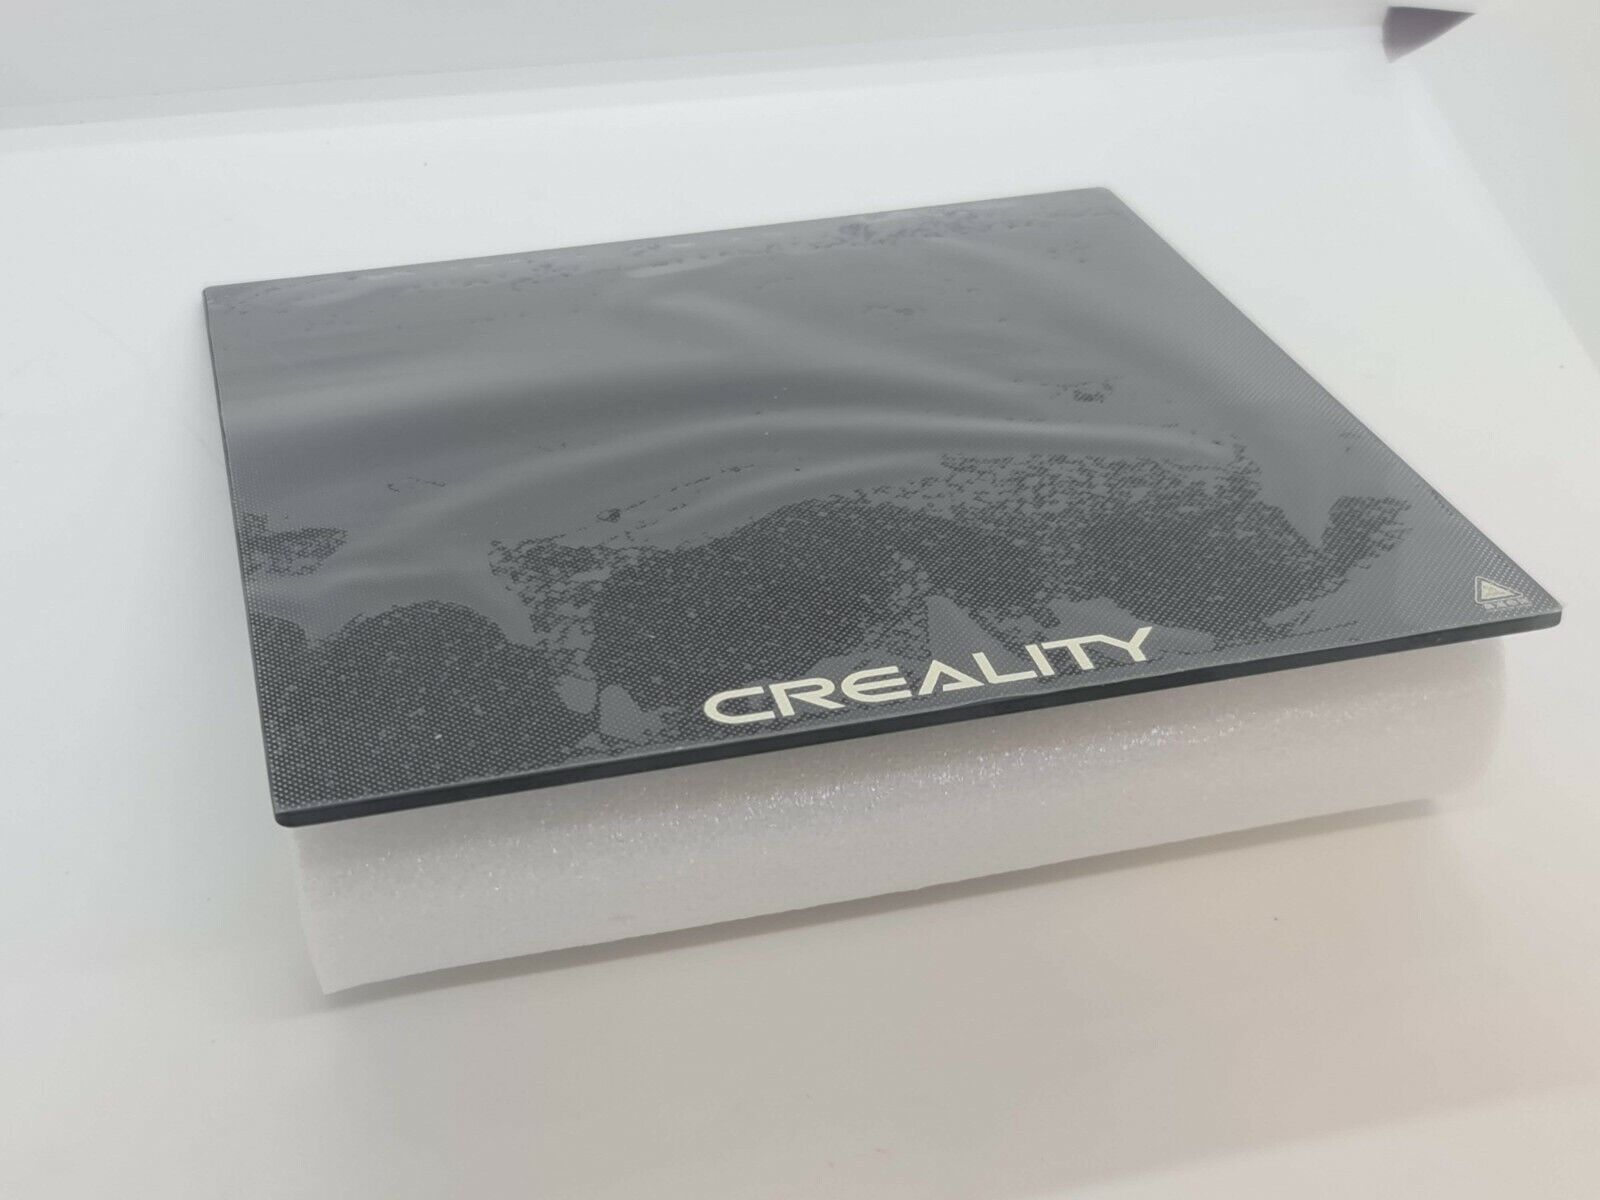 Creality Ender 3 Pro / Ender 3 V2 Glass Bed Removable Print Plate 235X235mm